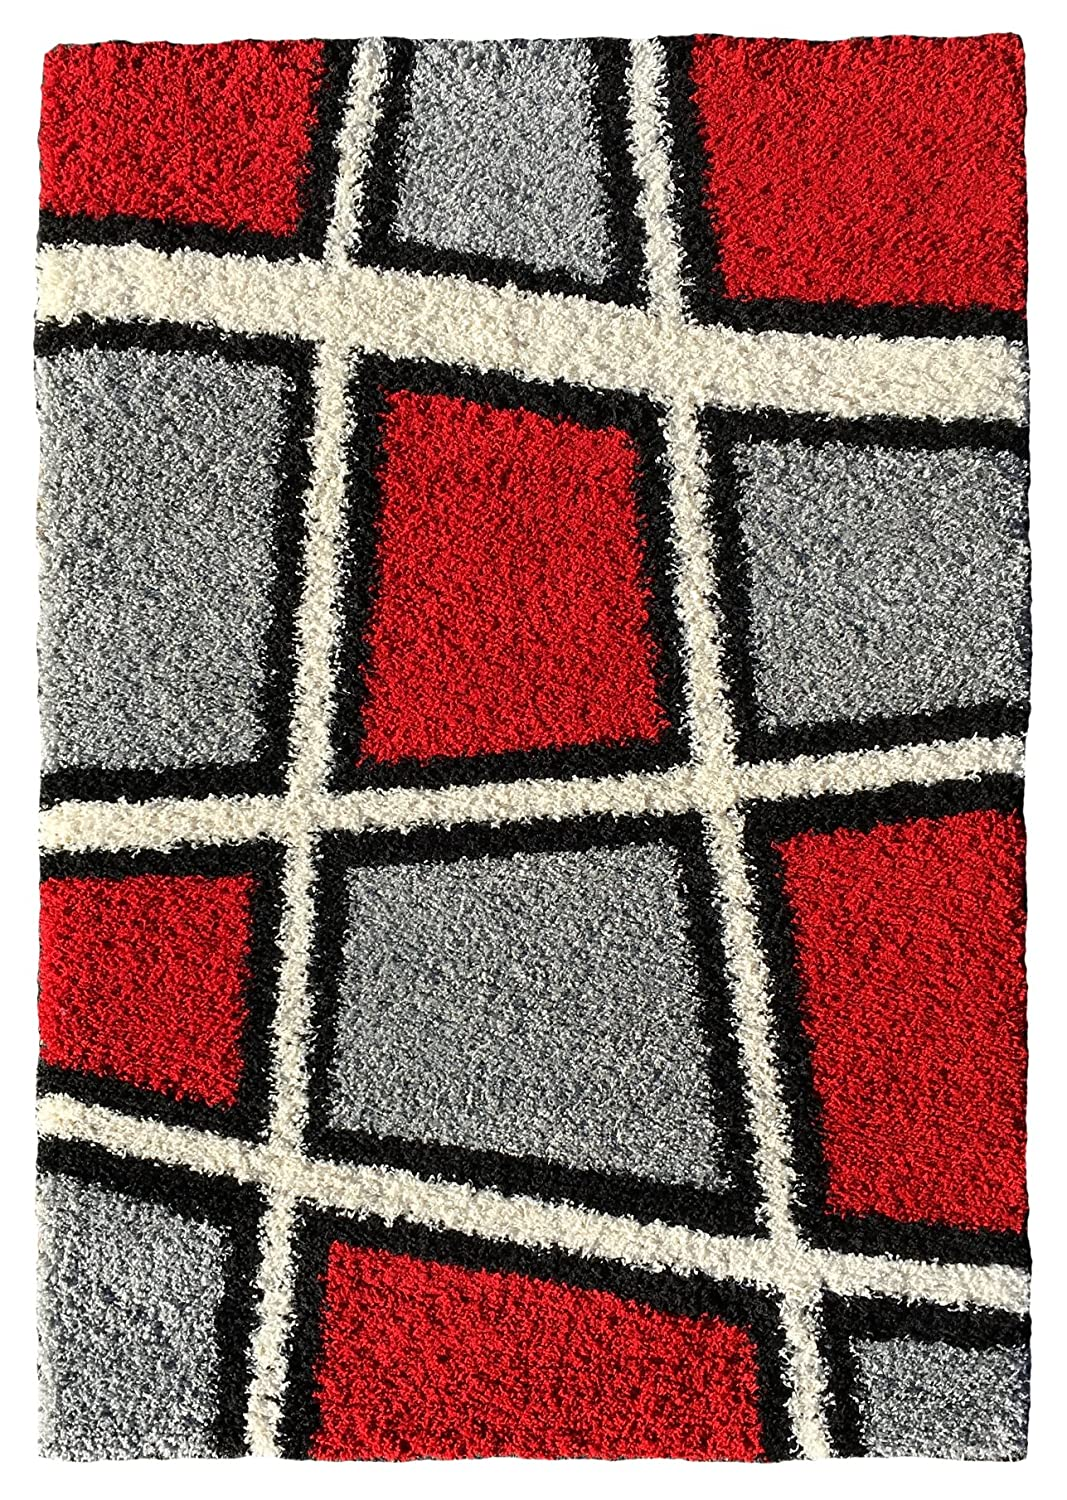 amazoncom soft shag area rug 3x5 geometric tile design red ivory black grey shaggy rug area rugs for living room bedroom kitchen decorative